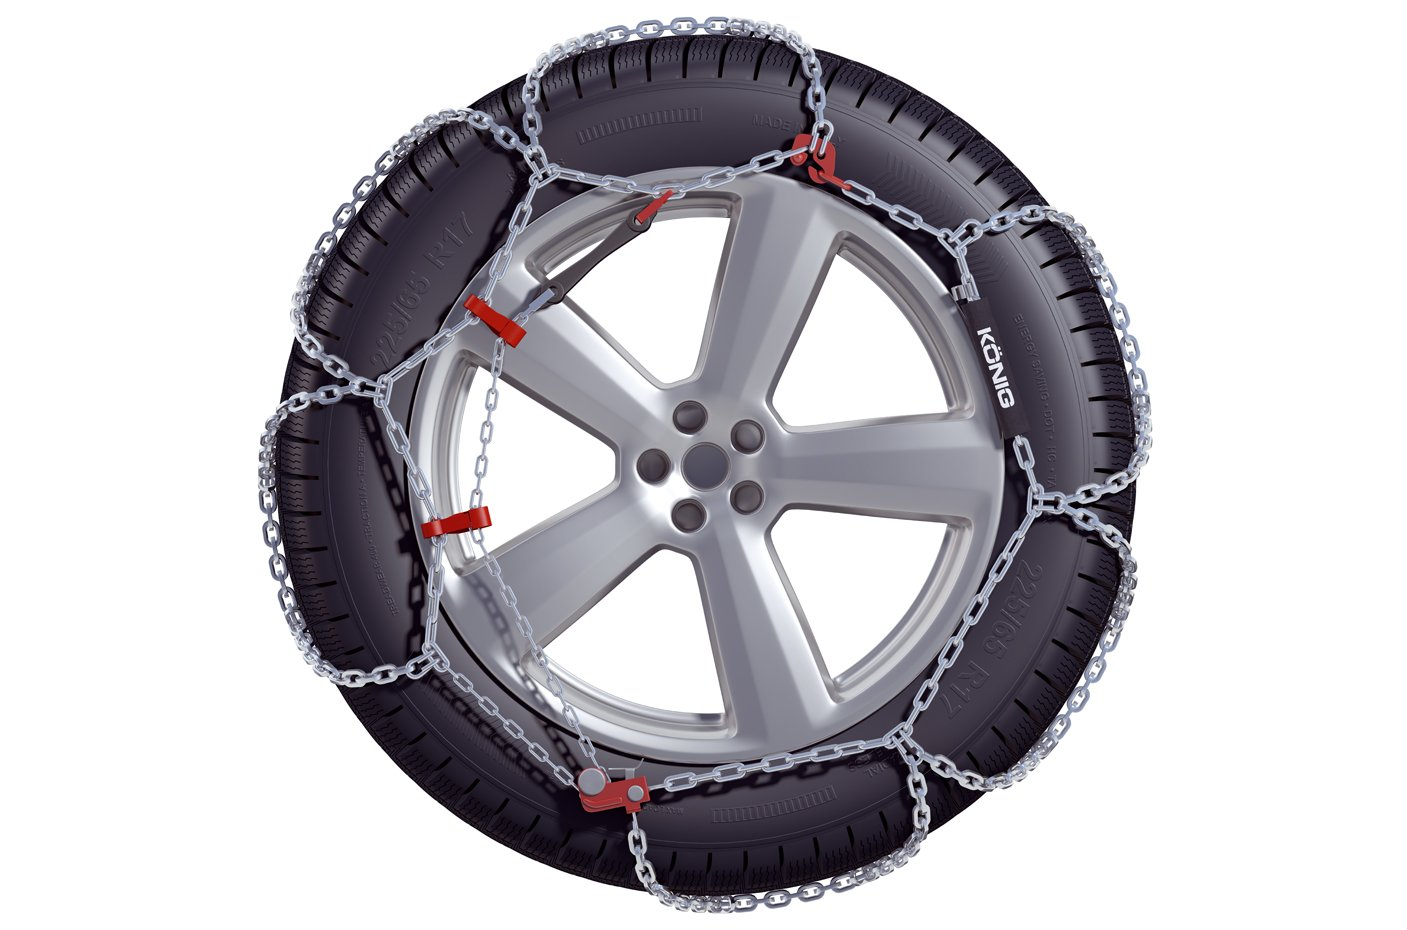 KONIG XB-16 225 Snow chains set of 2